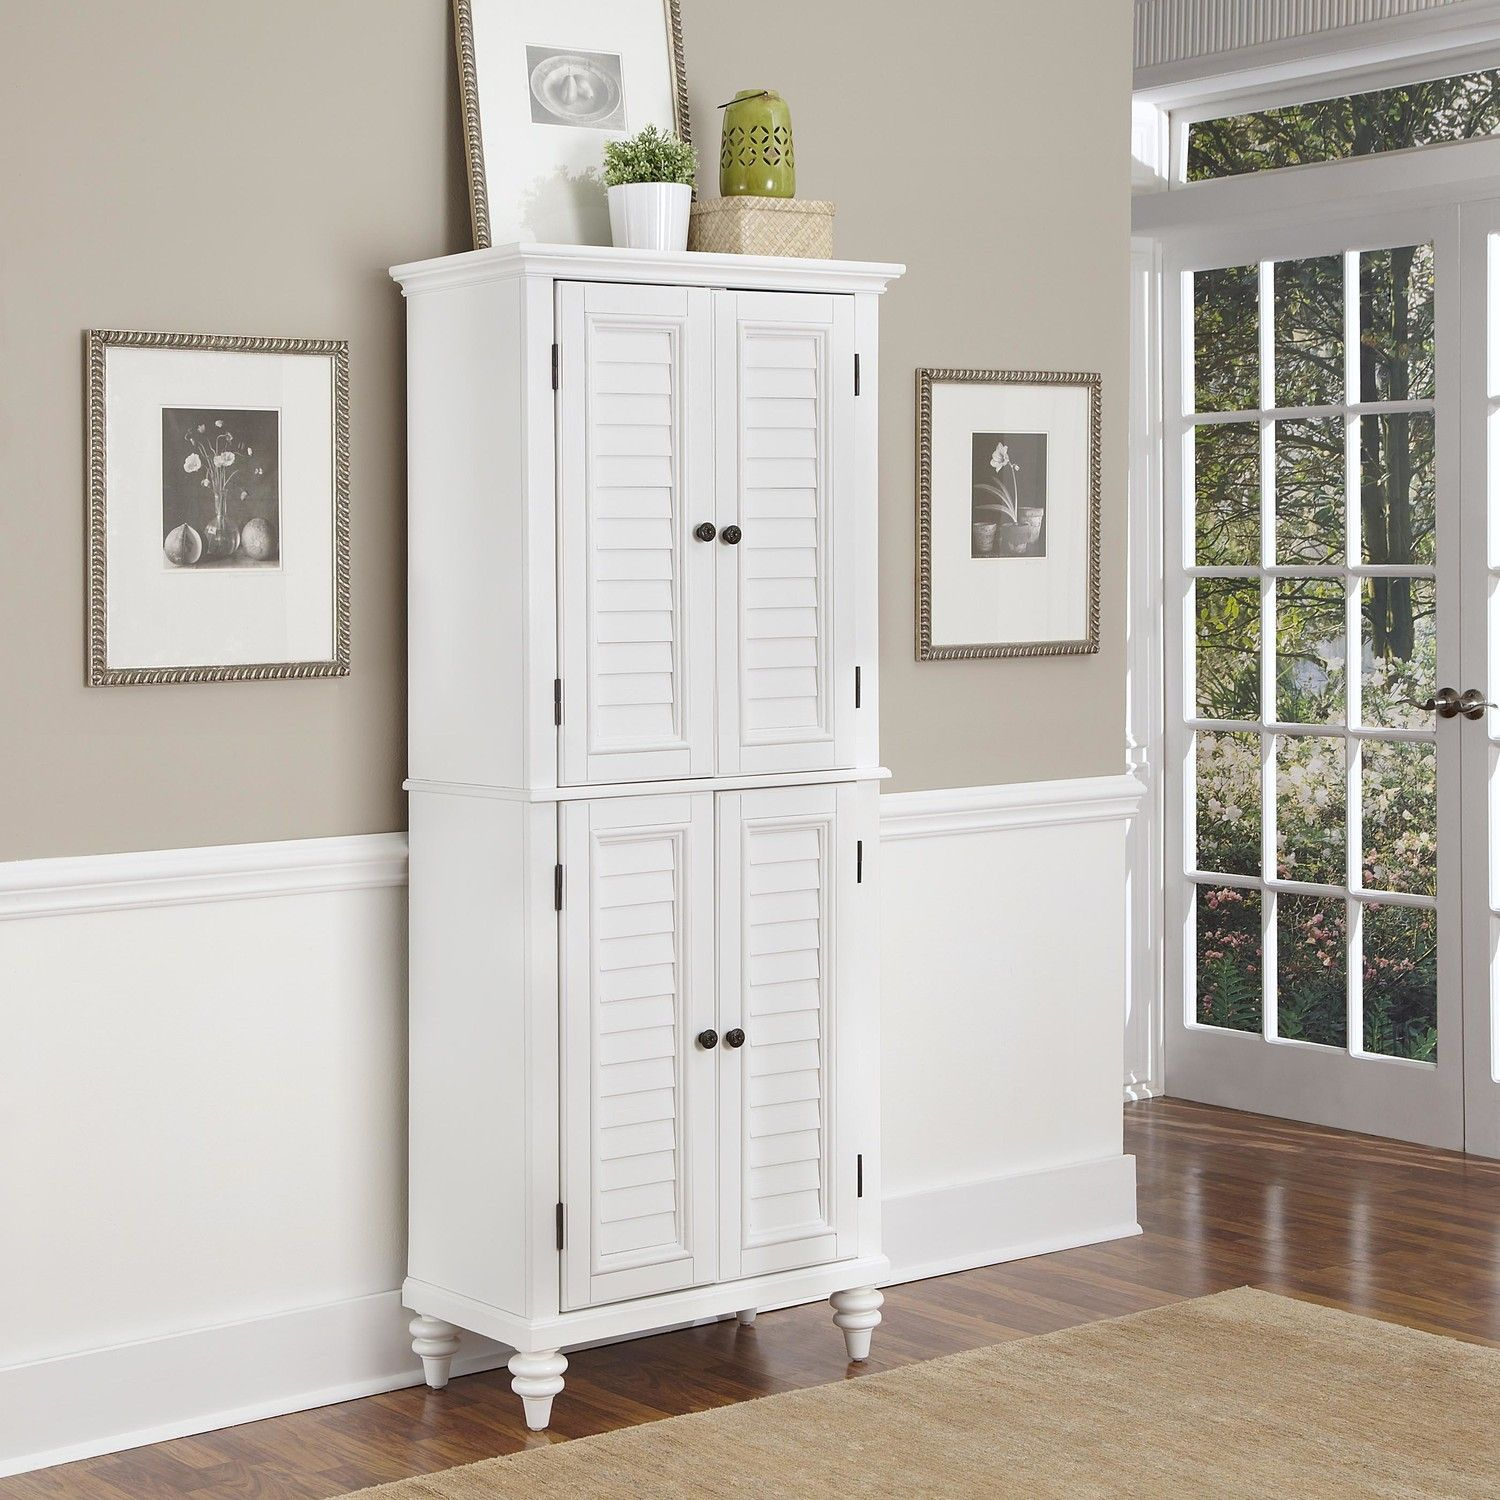 Door Pantry Cabinet With Furniture Portable Kitchen Cabinets For Food And Inch